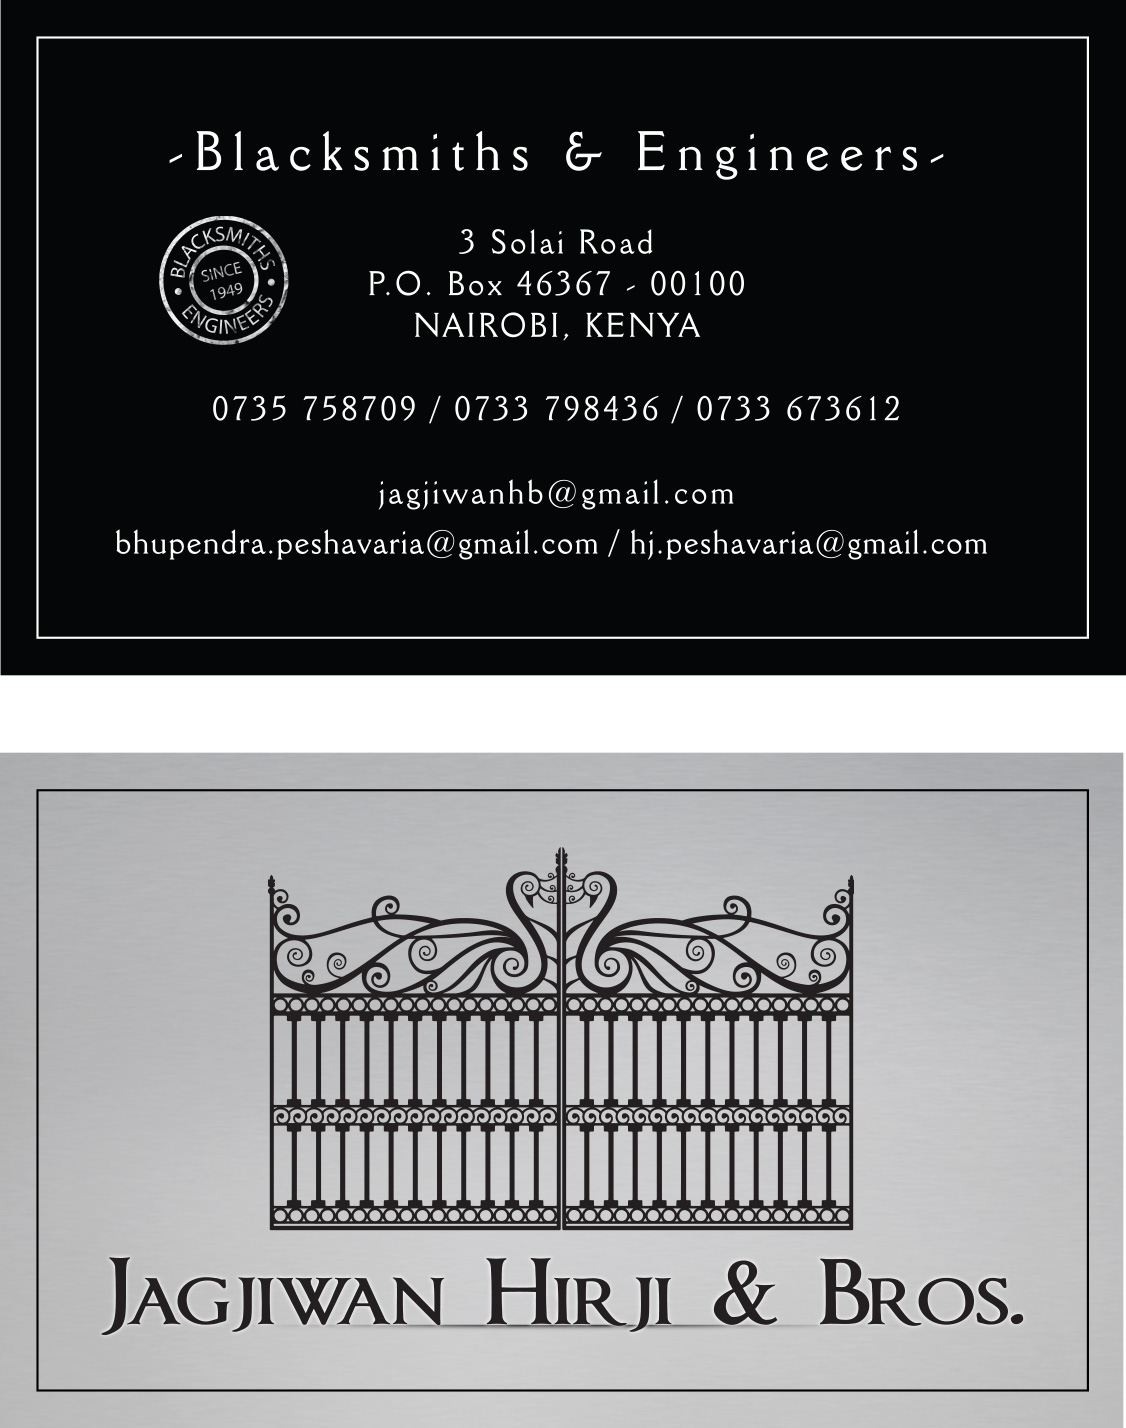 JHB_BusinessCards